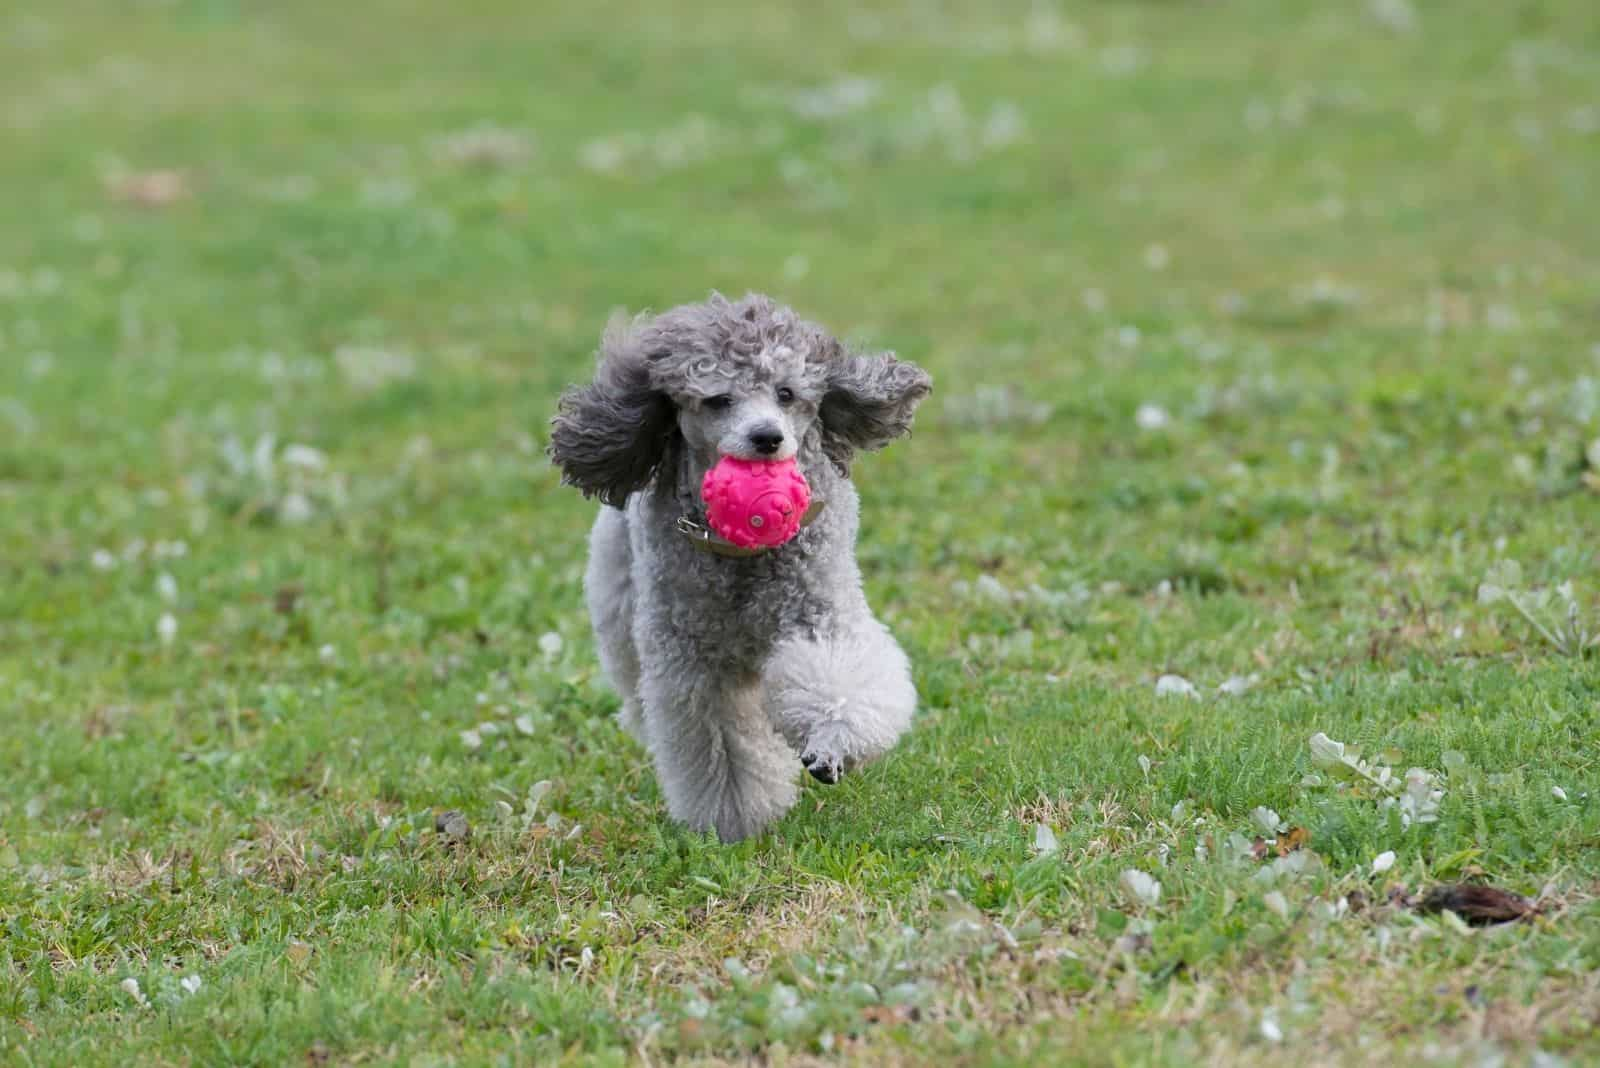 poodle playing in the field with a pink ball in its mouth and running